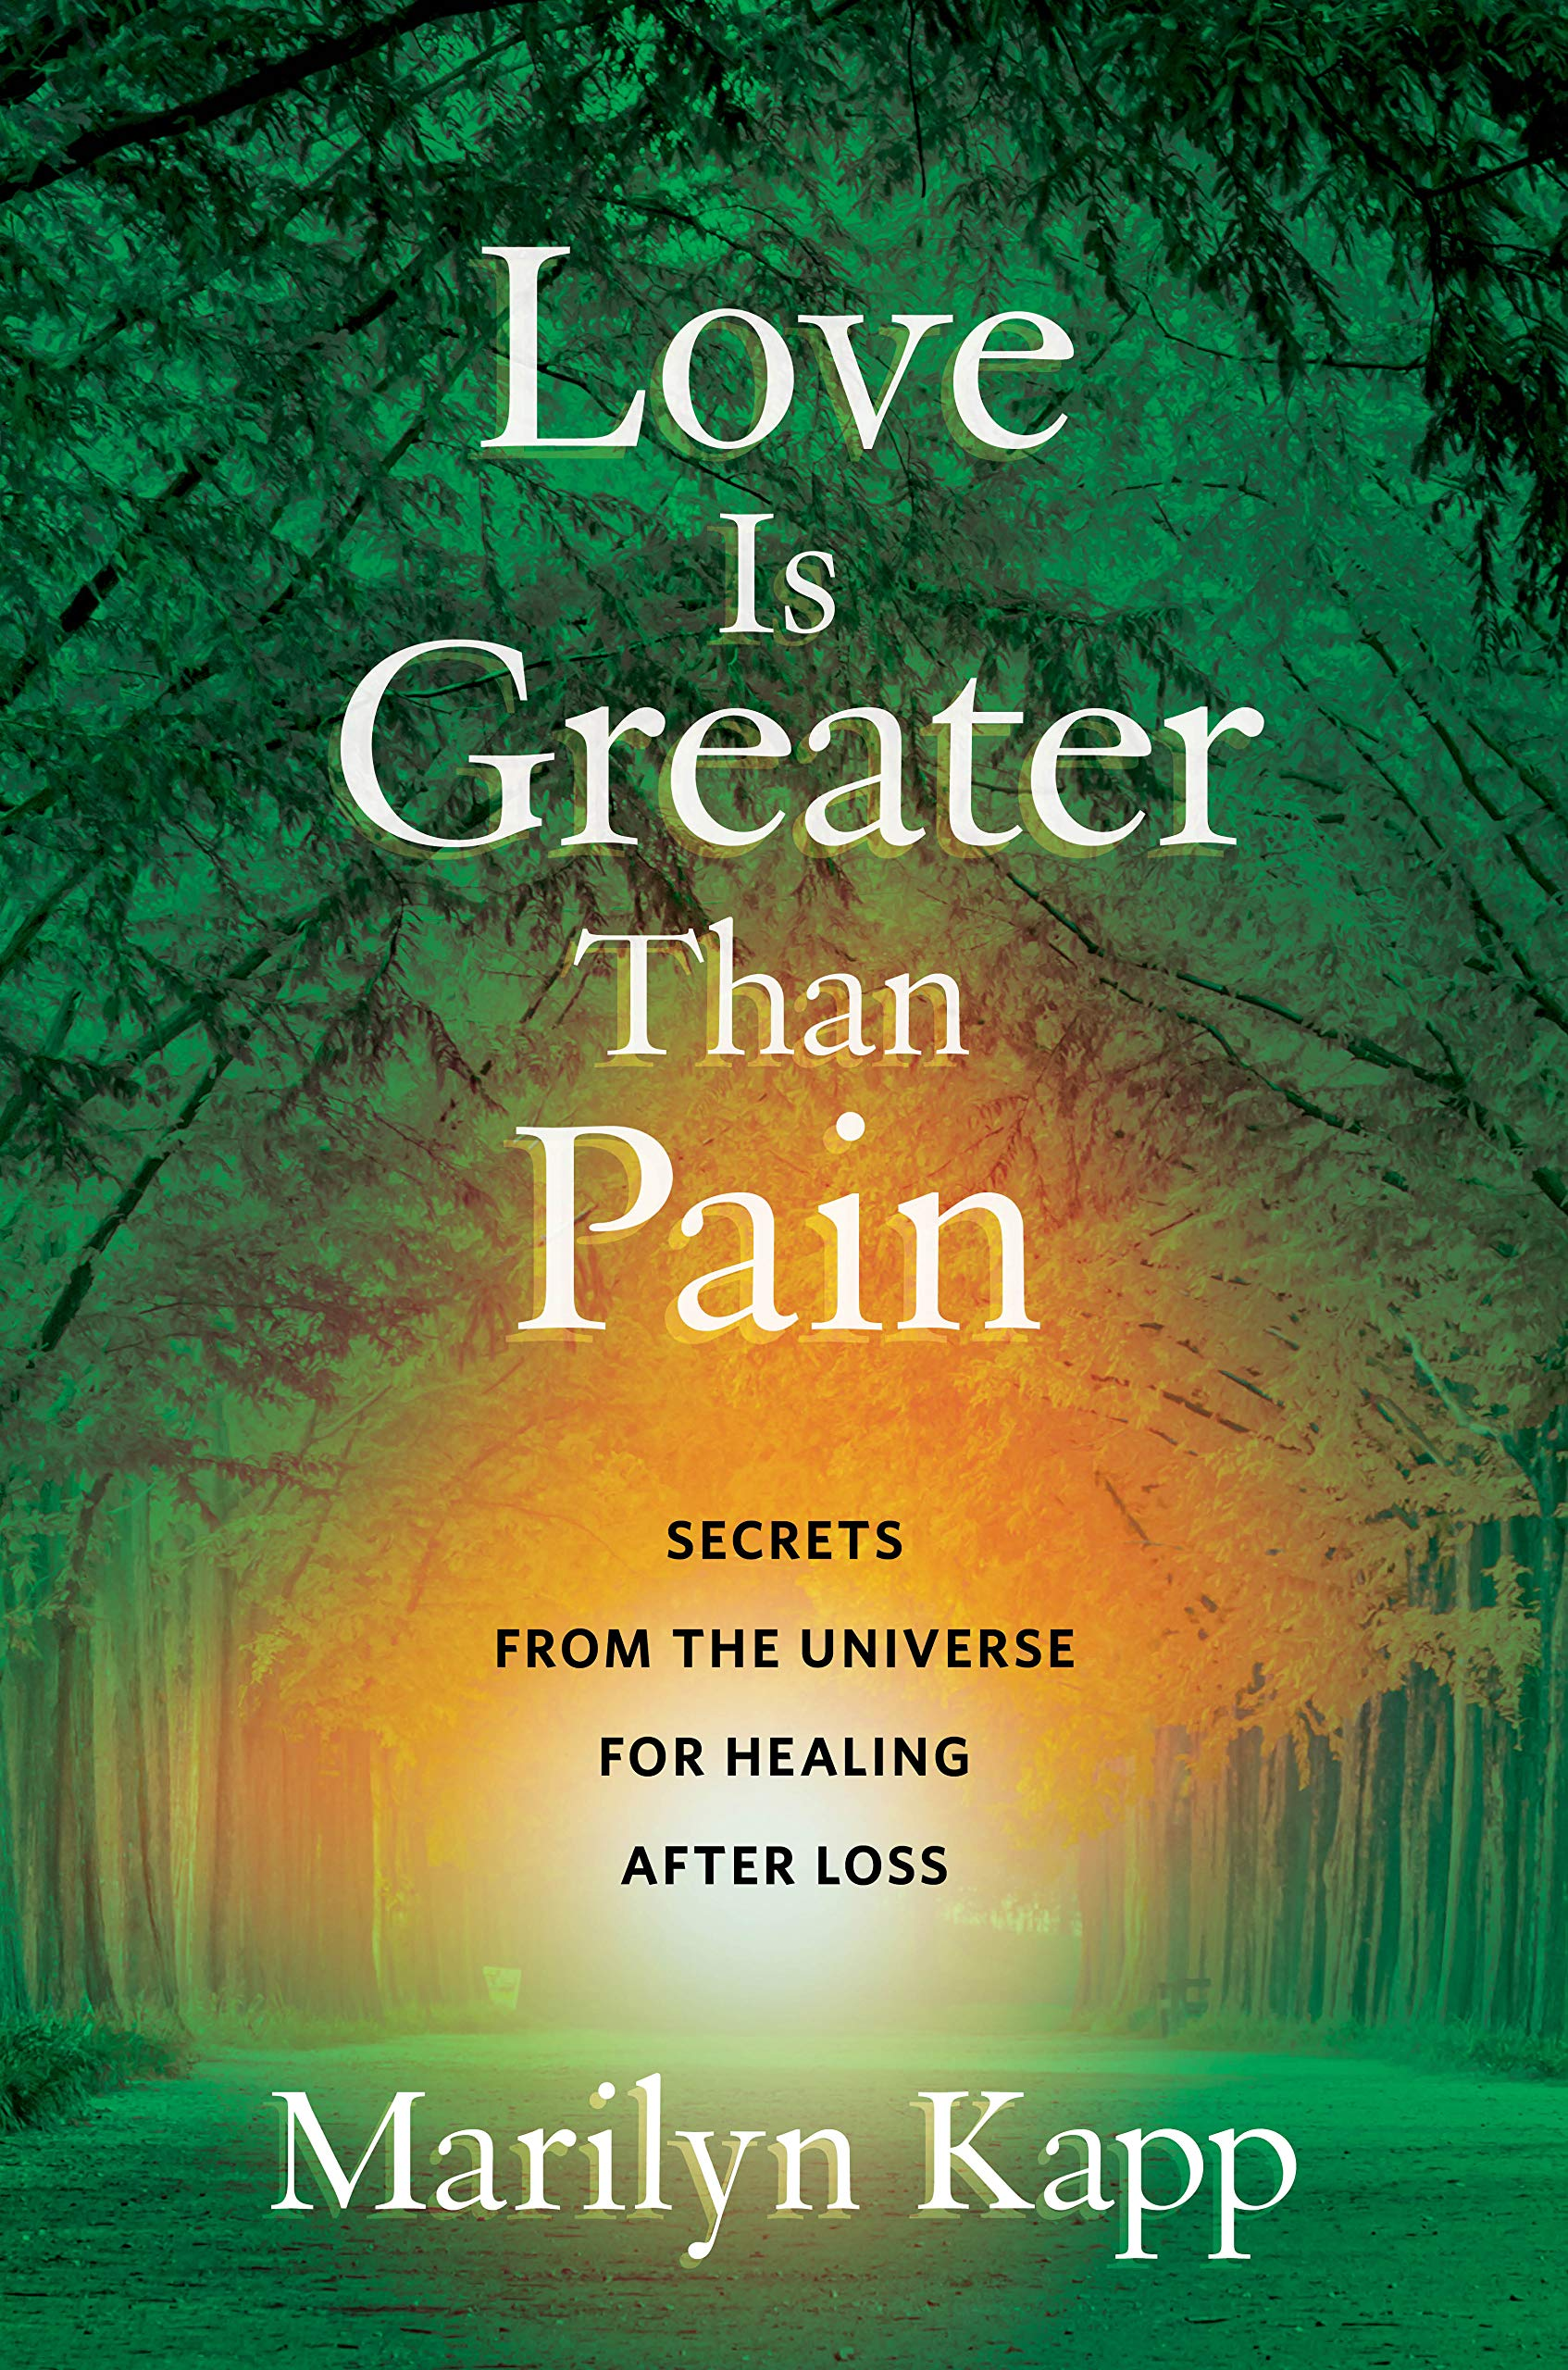 Image OfLove Is Greater Than Pain: Secrets From The Universe For Healing After Loss